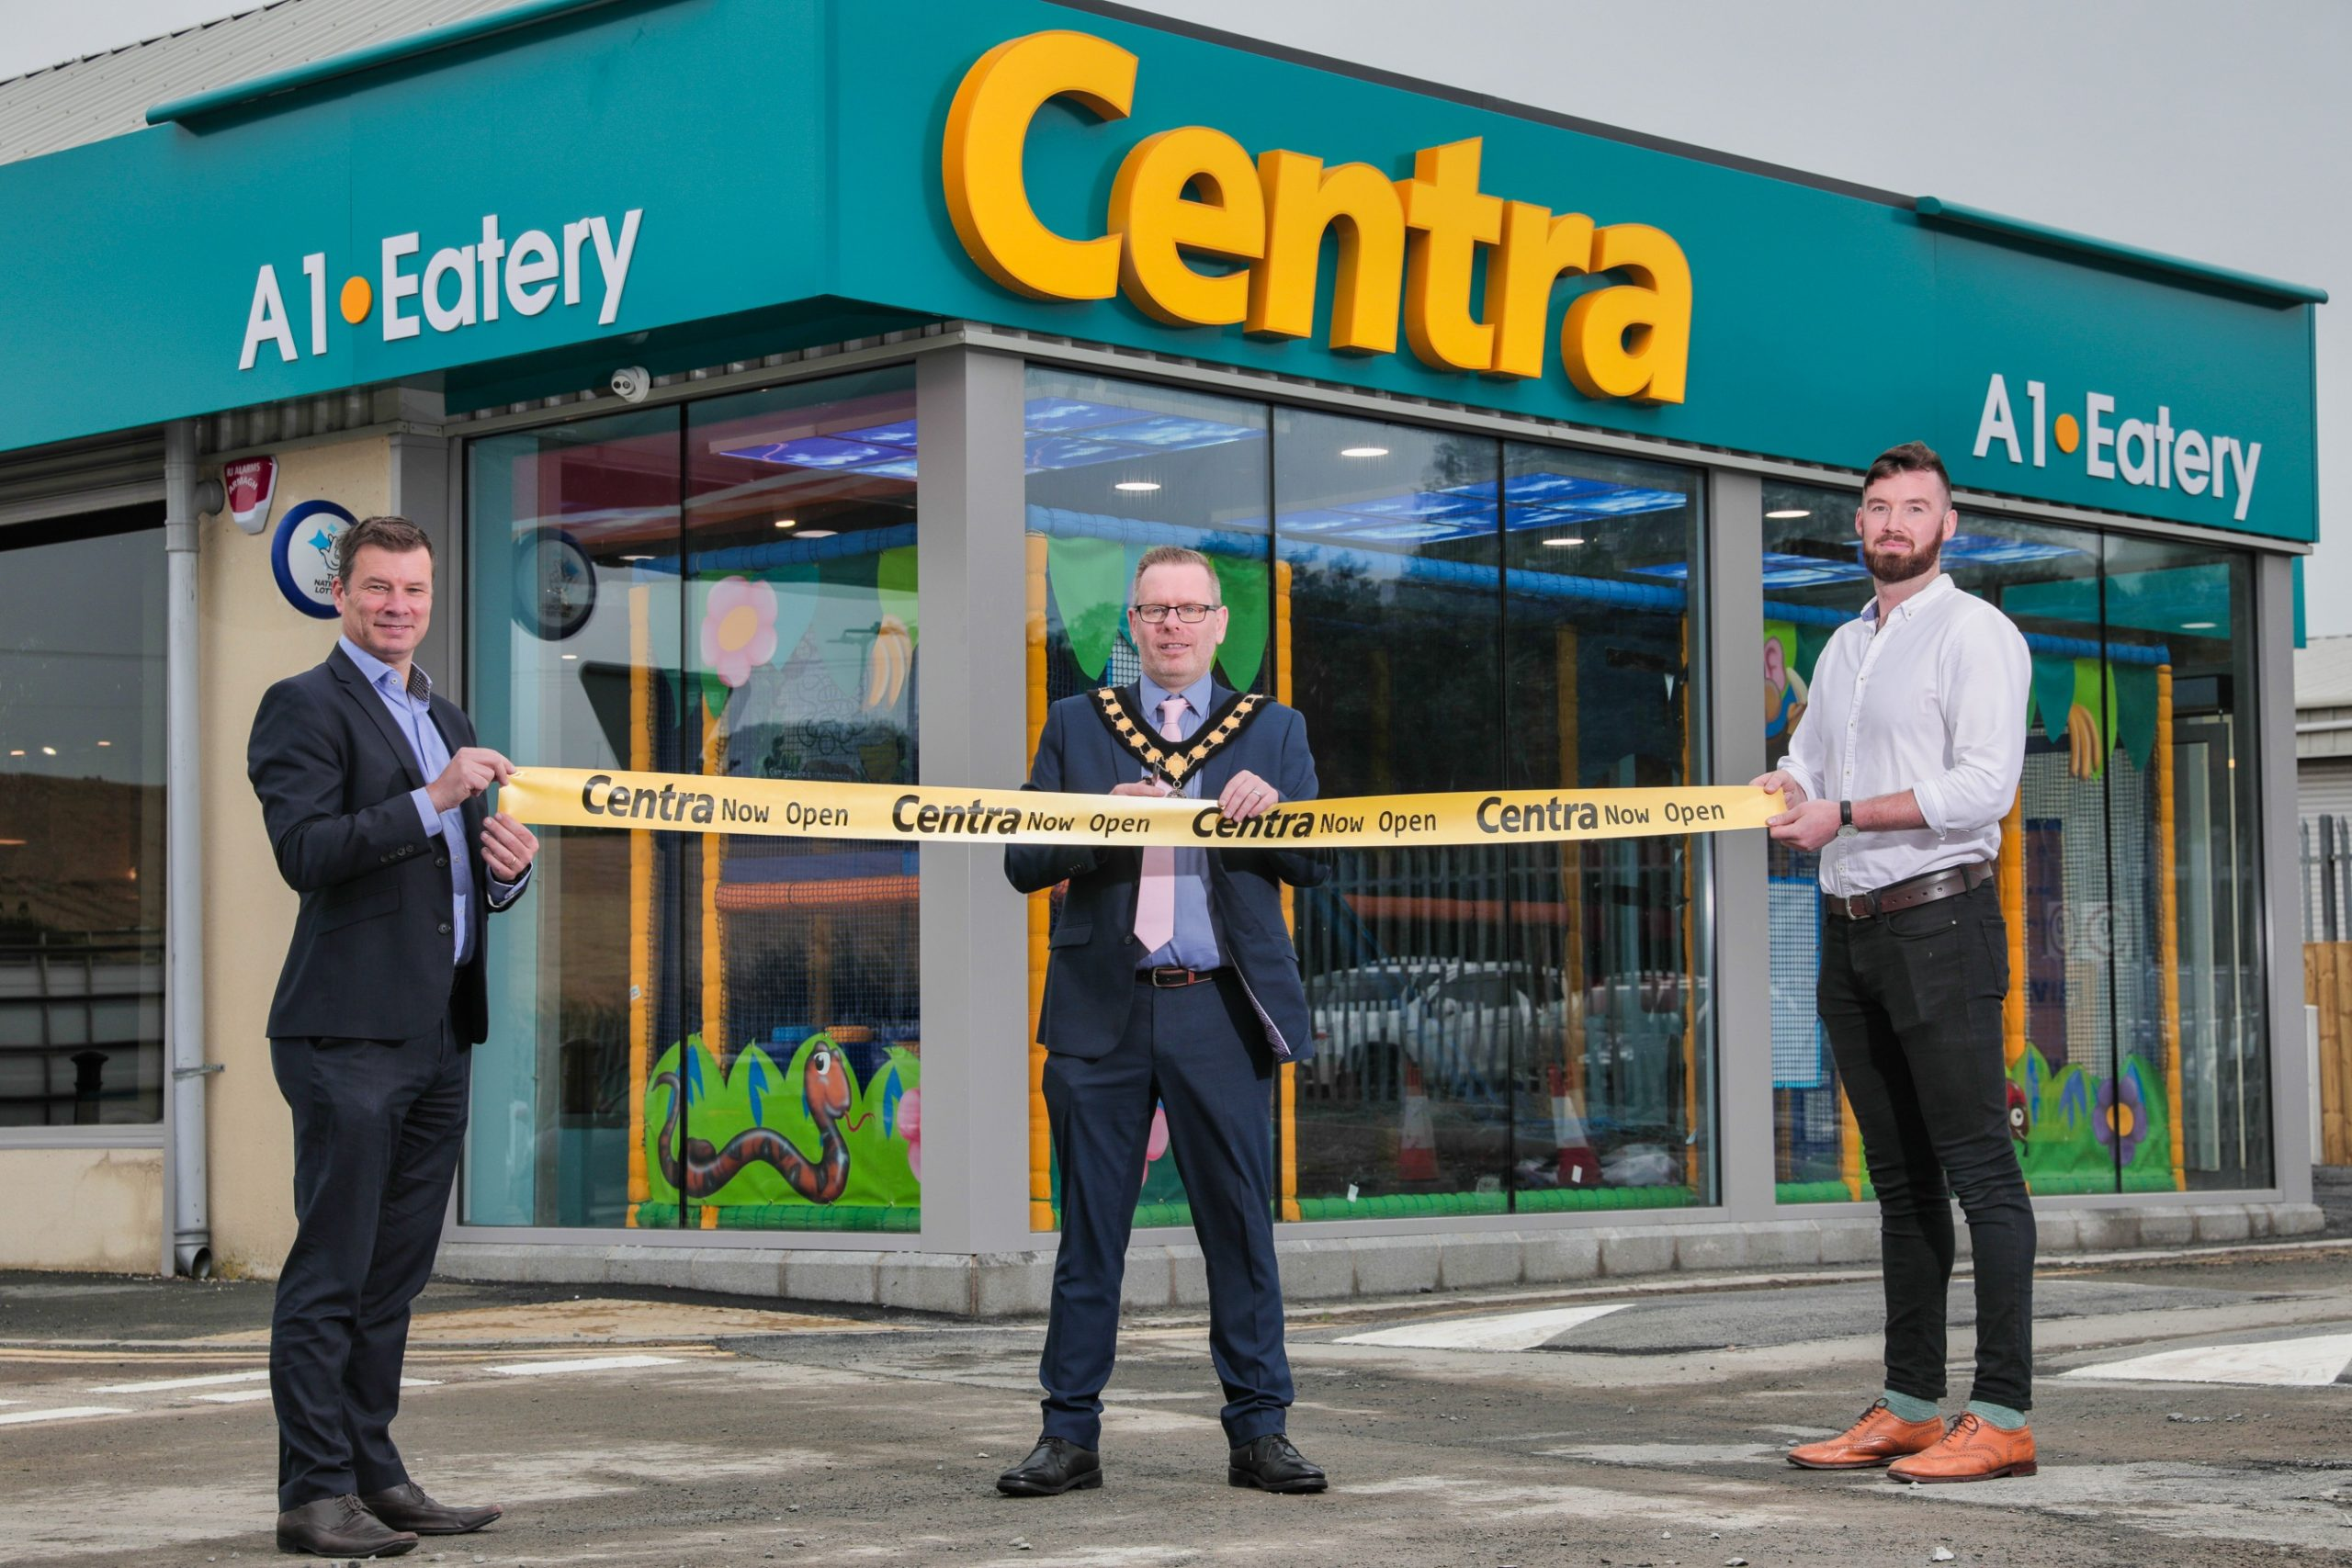 Drive-Thru First for Convenience in Northern Ireland